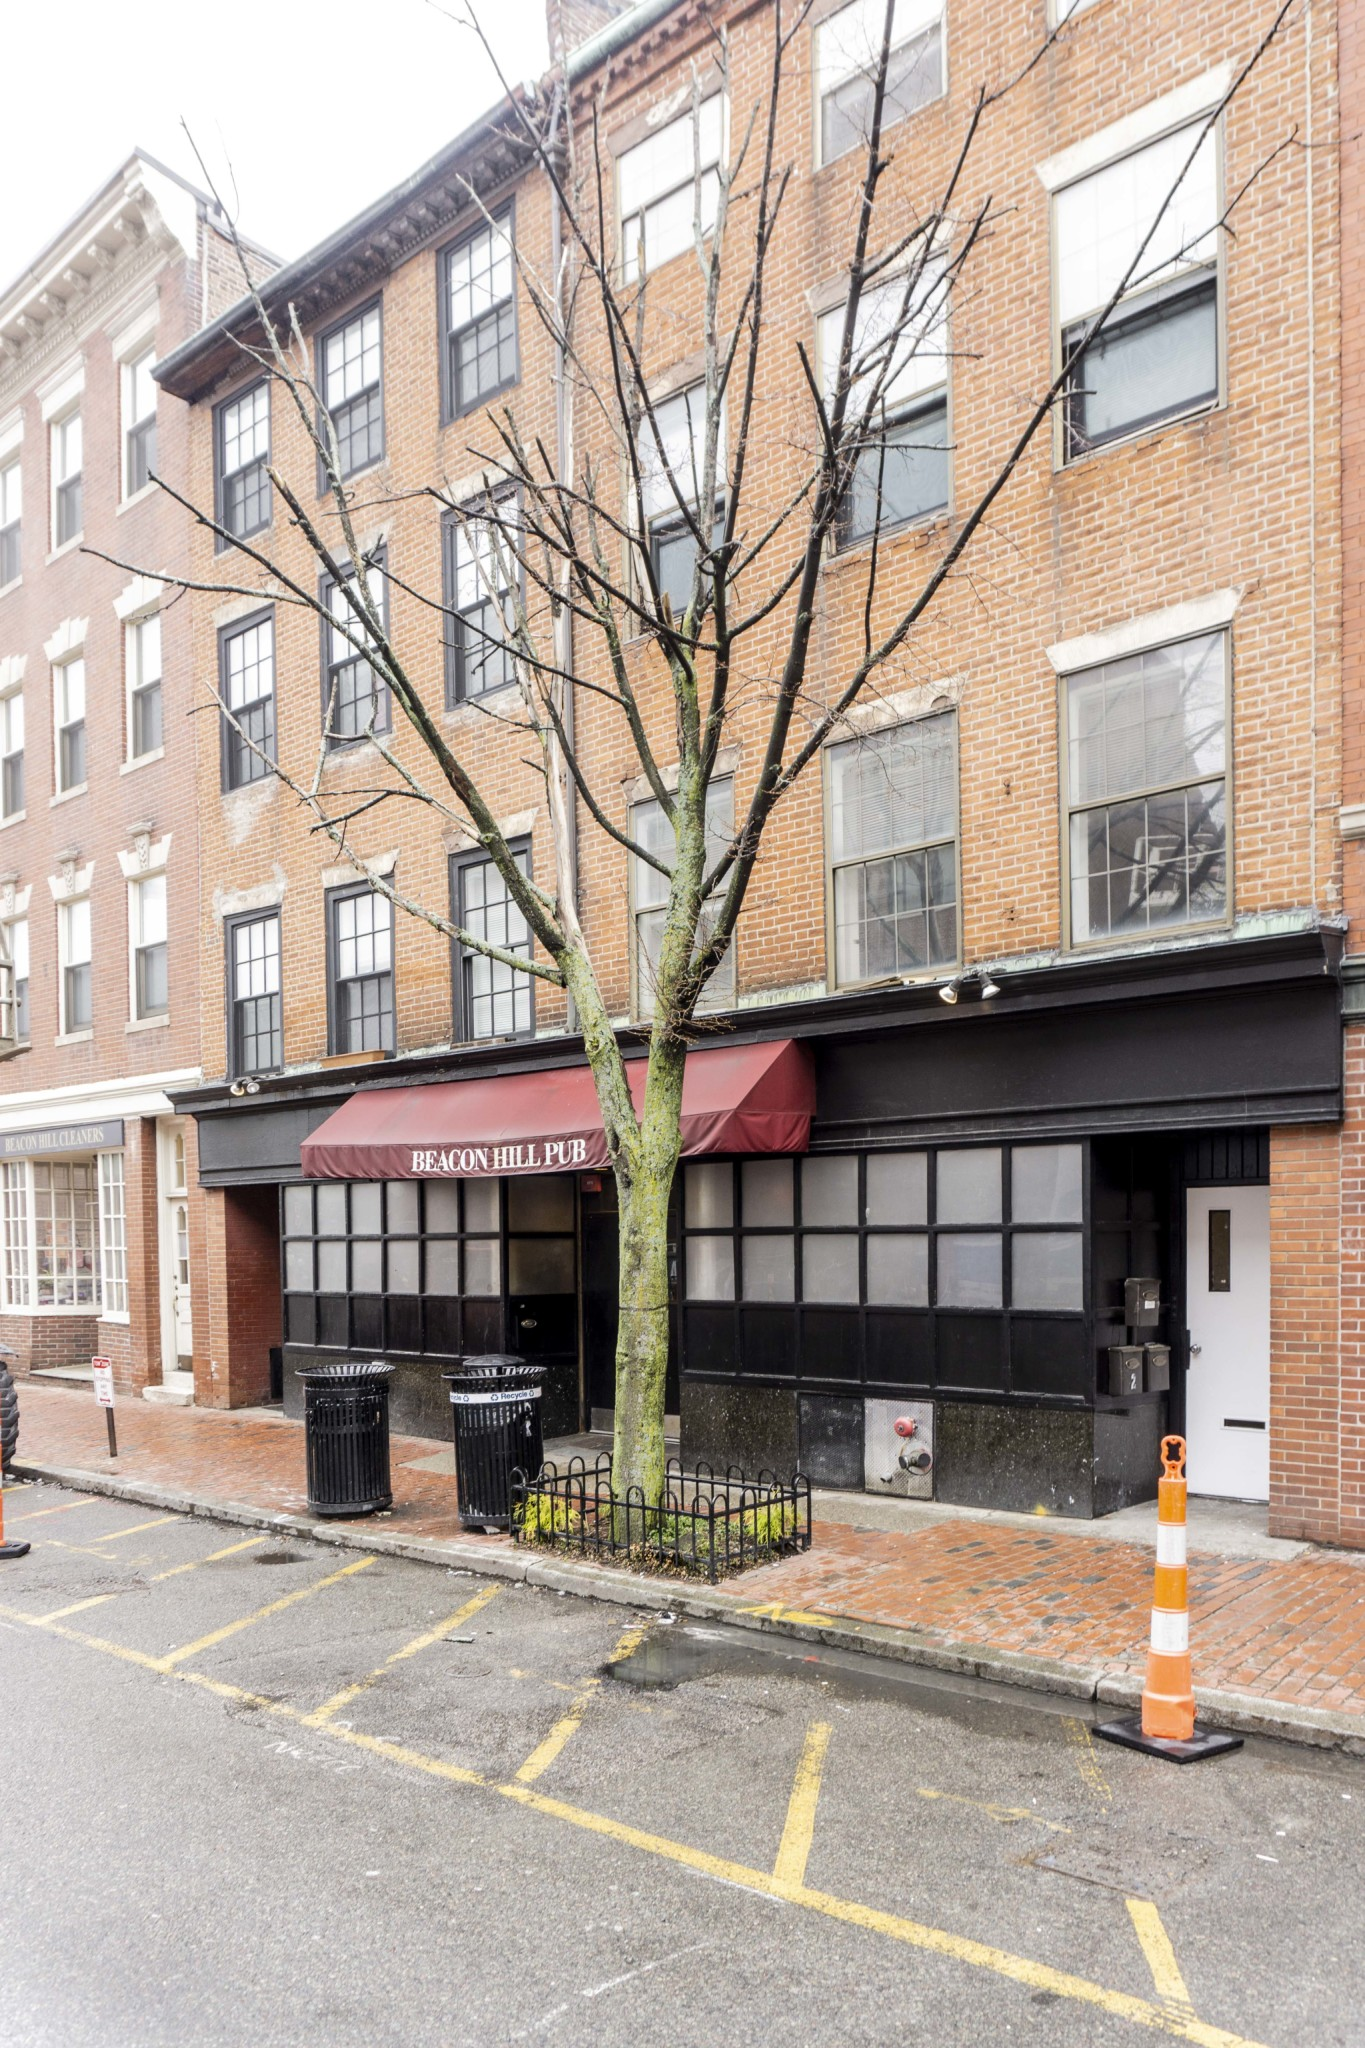 1.5 Beds, 1 Bath apartment in Boston, Beacon Hill for $2,200